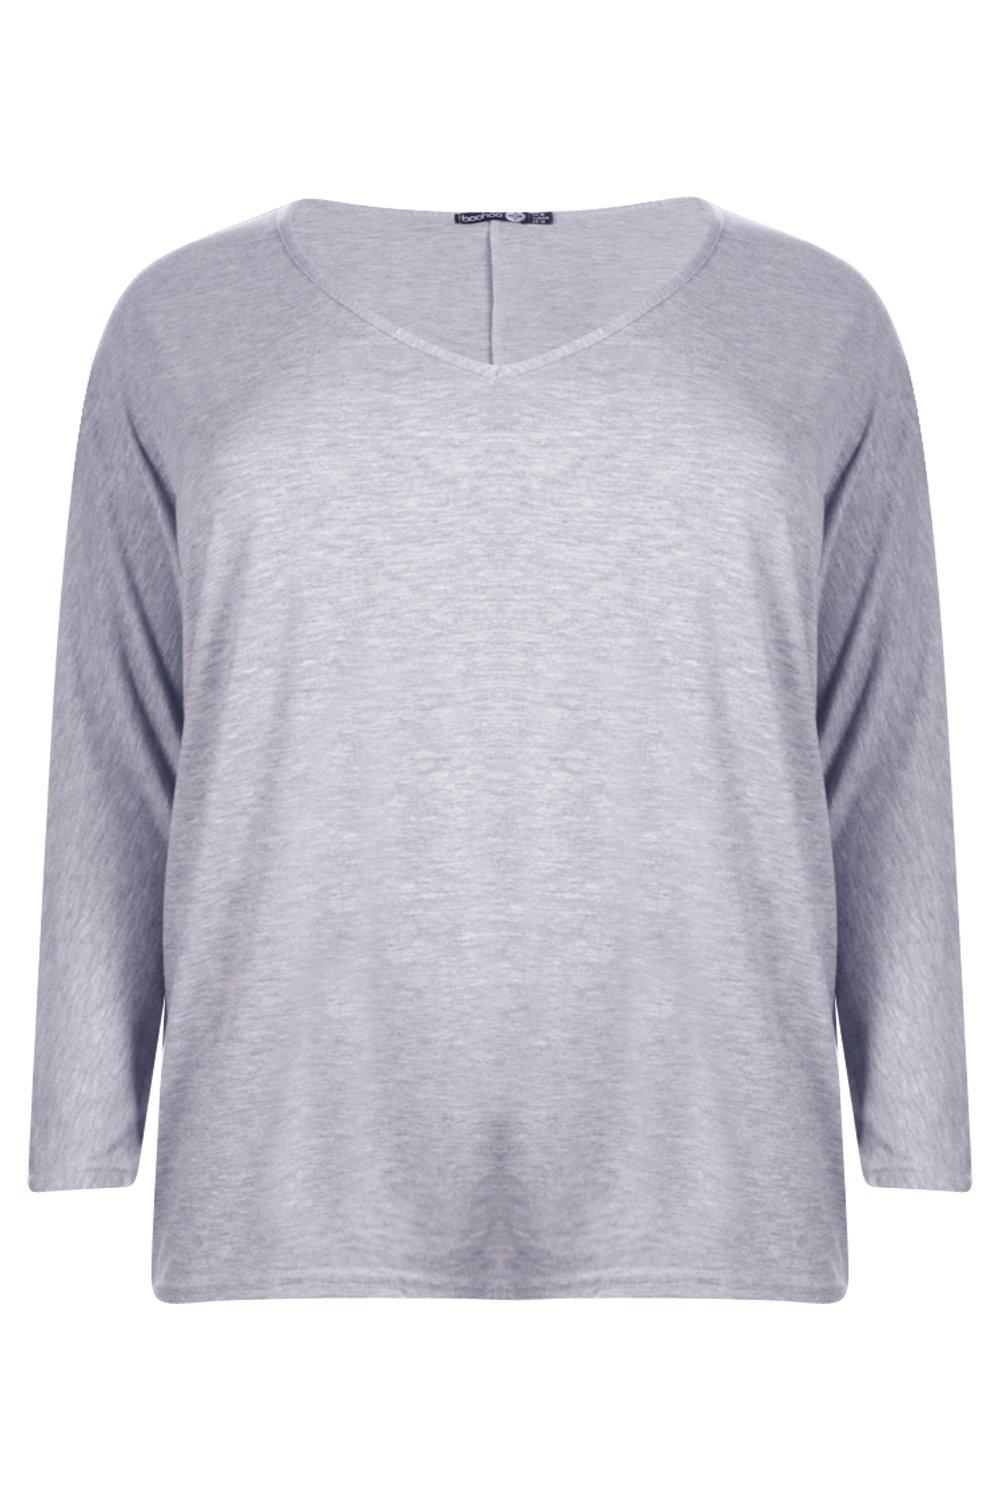 Long T Plus grey Sleeve Shirt Basic UwxzdnRqO